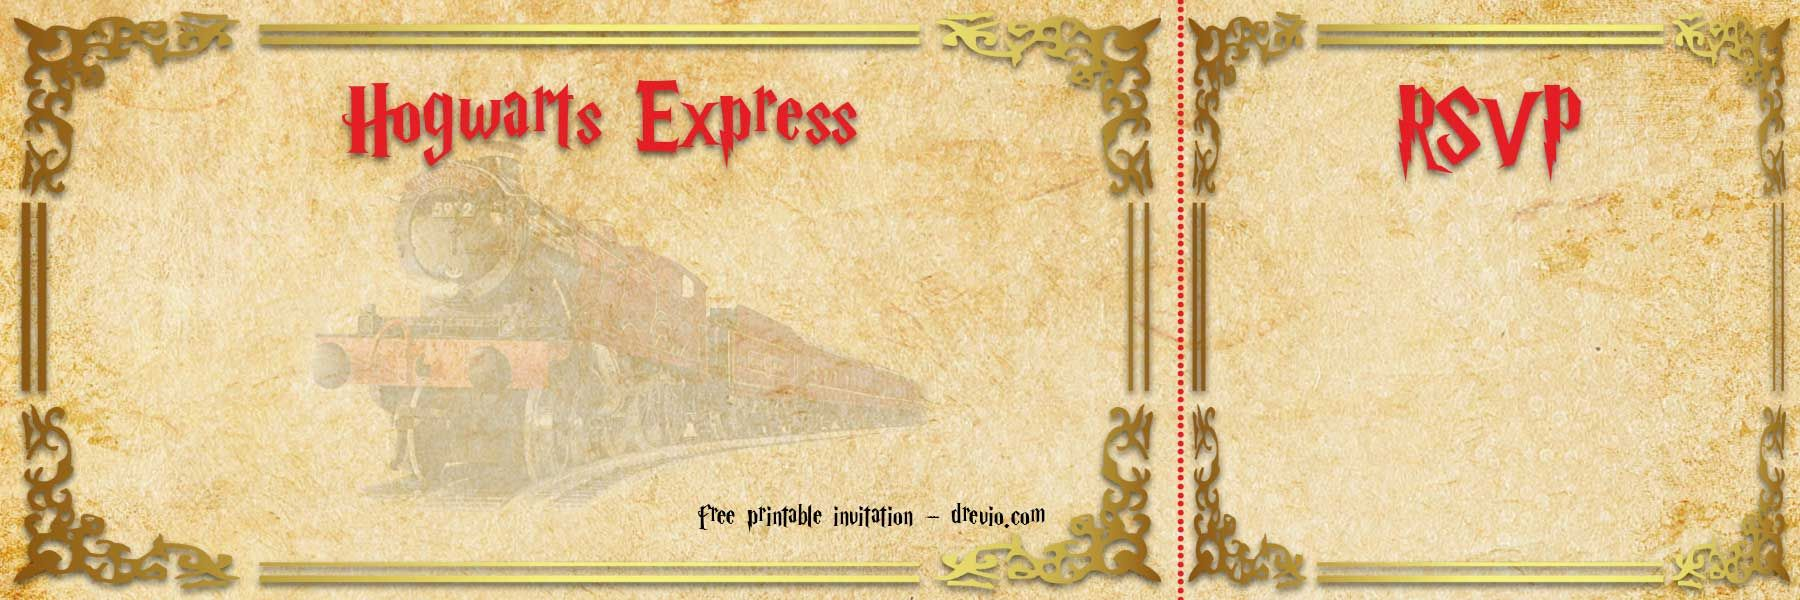 image about Hogwarts Express Printable known as Absolutely free Printable Hogwarts Categorical Ticket Invitation Template